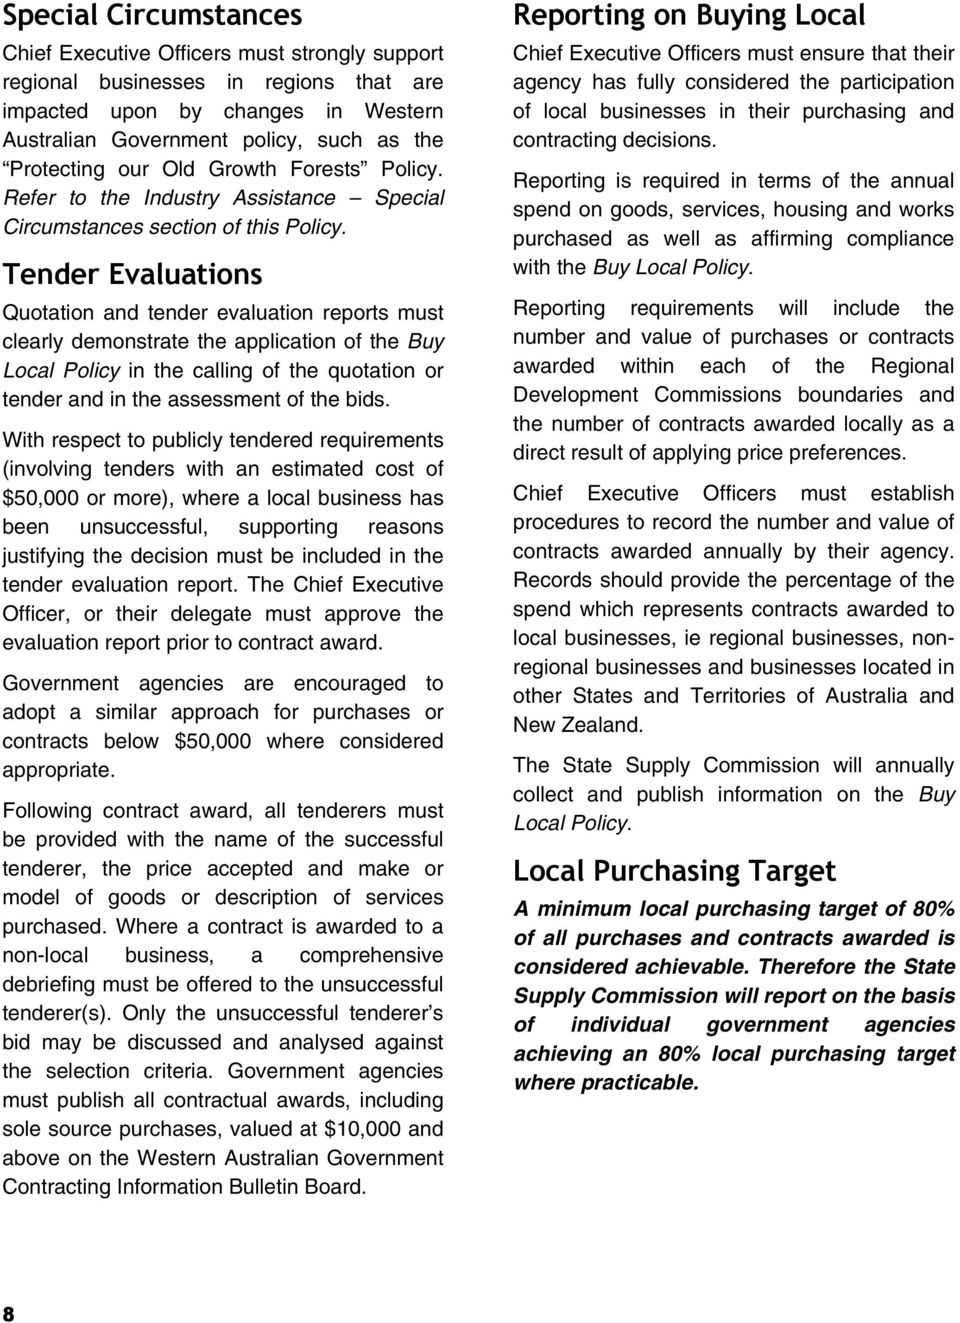 Tender Evaluations Quotation and tender evaluation reports must clearly demonstrate the application of the Buy Local Policy in the calling of the quotation or tender and in the assessment of the bids.